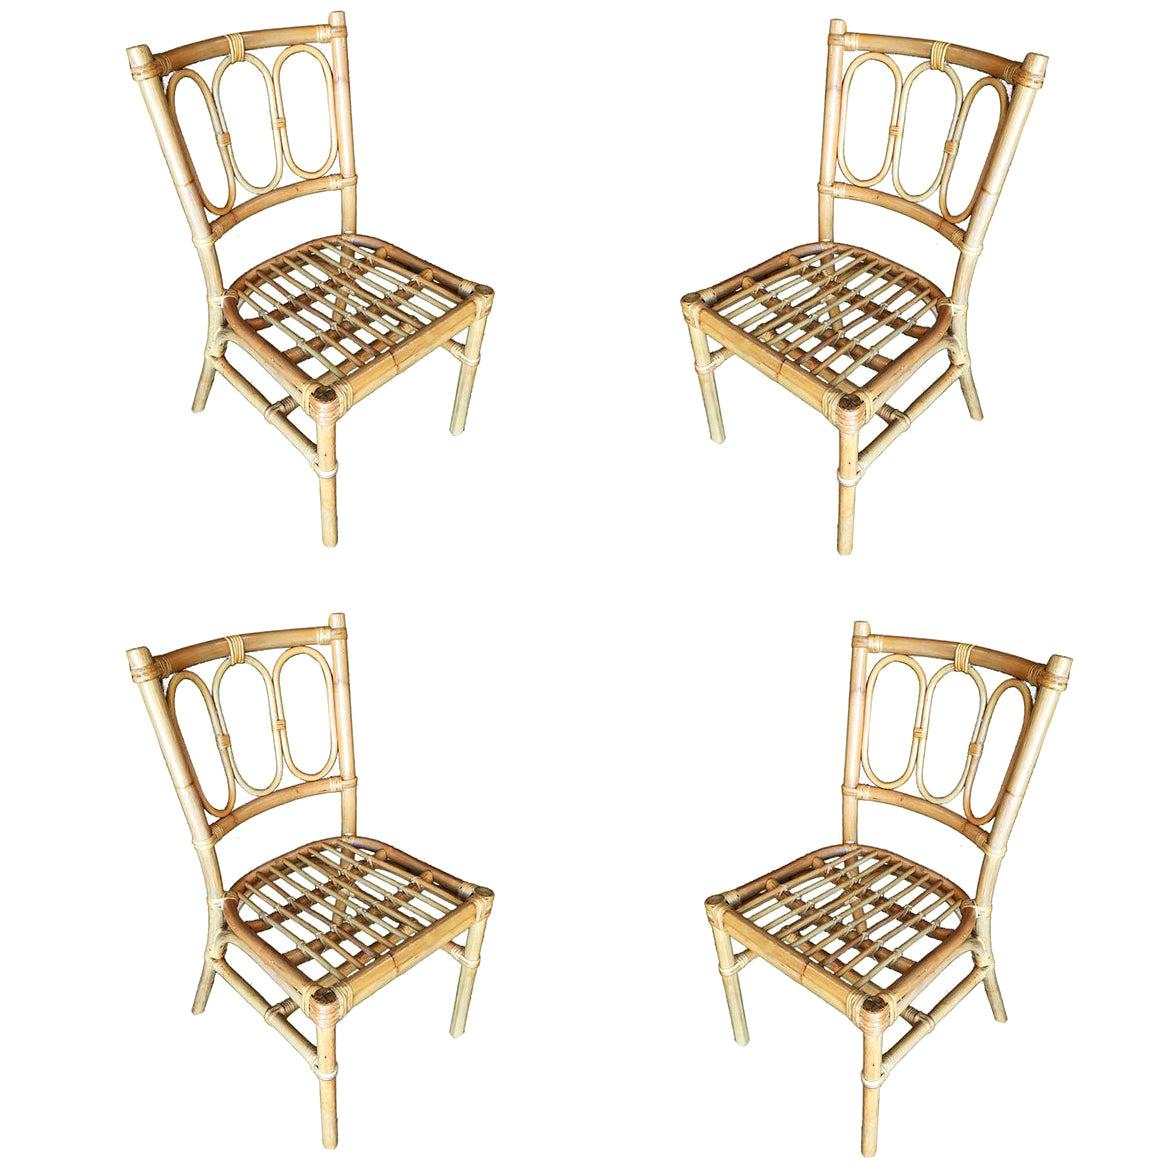 Restored Midcentury Three Ring Rattan Dining Side Chair, Set of Four